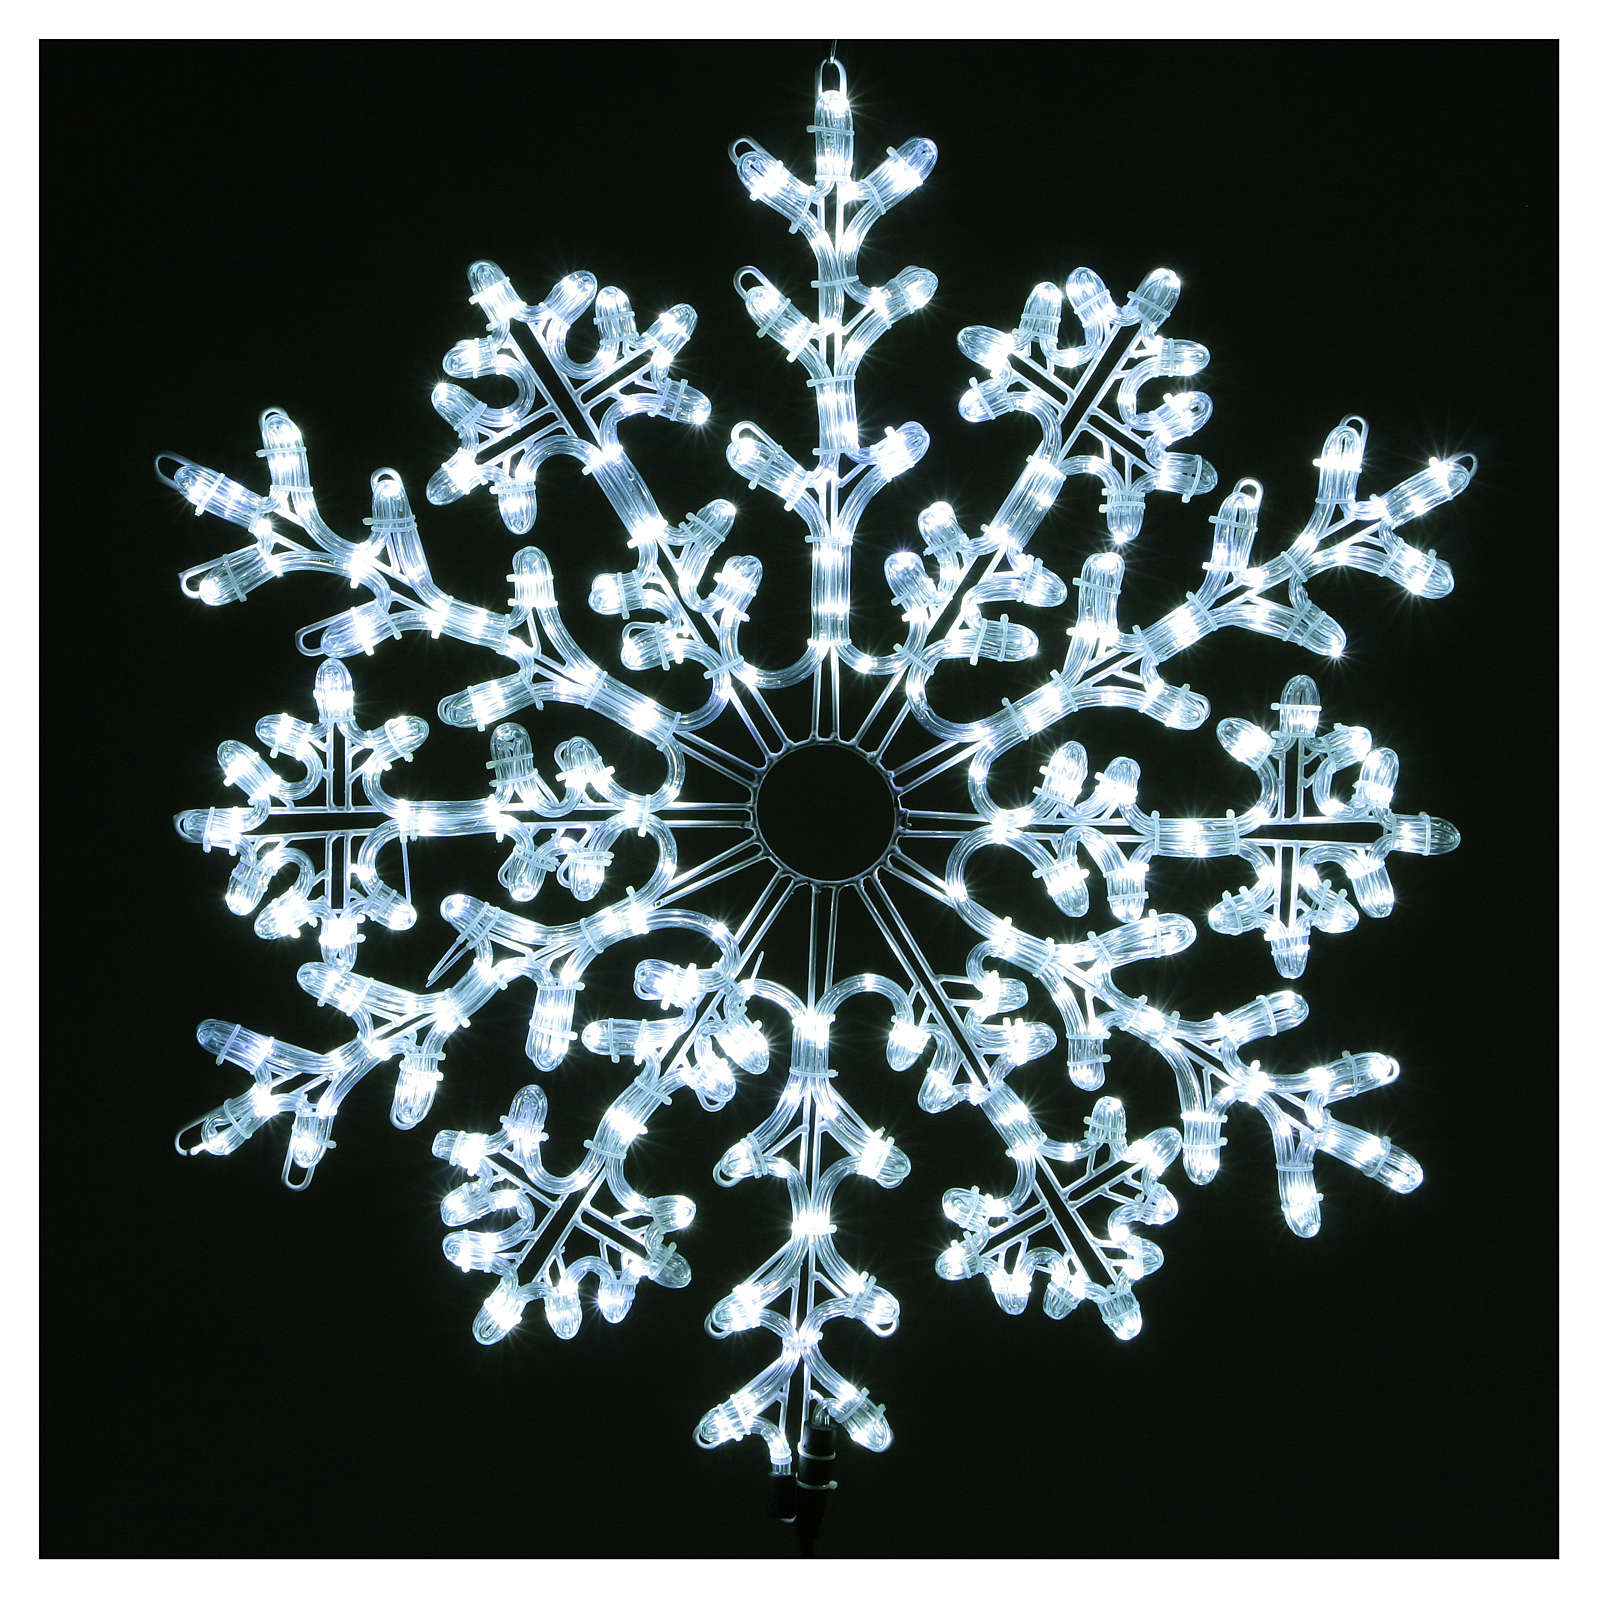 LED Snowflake 336 Ice White Lights Indoor and Outdoor Use 3